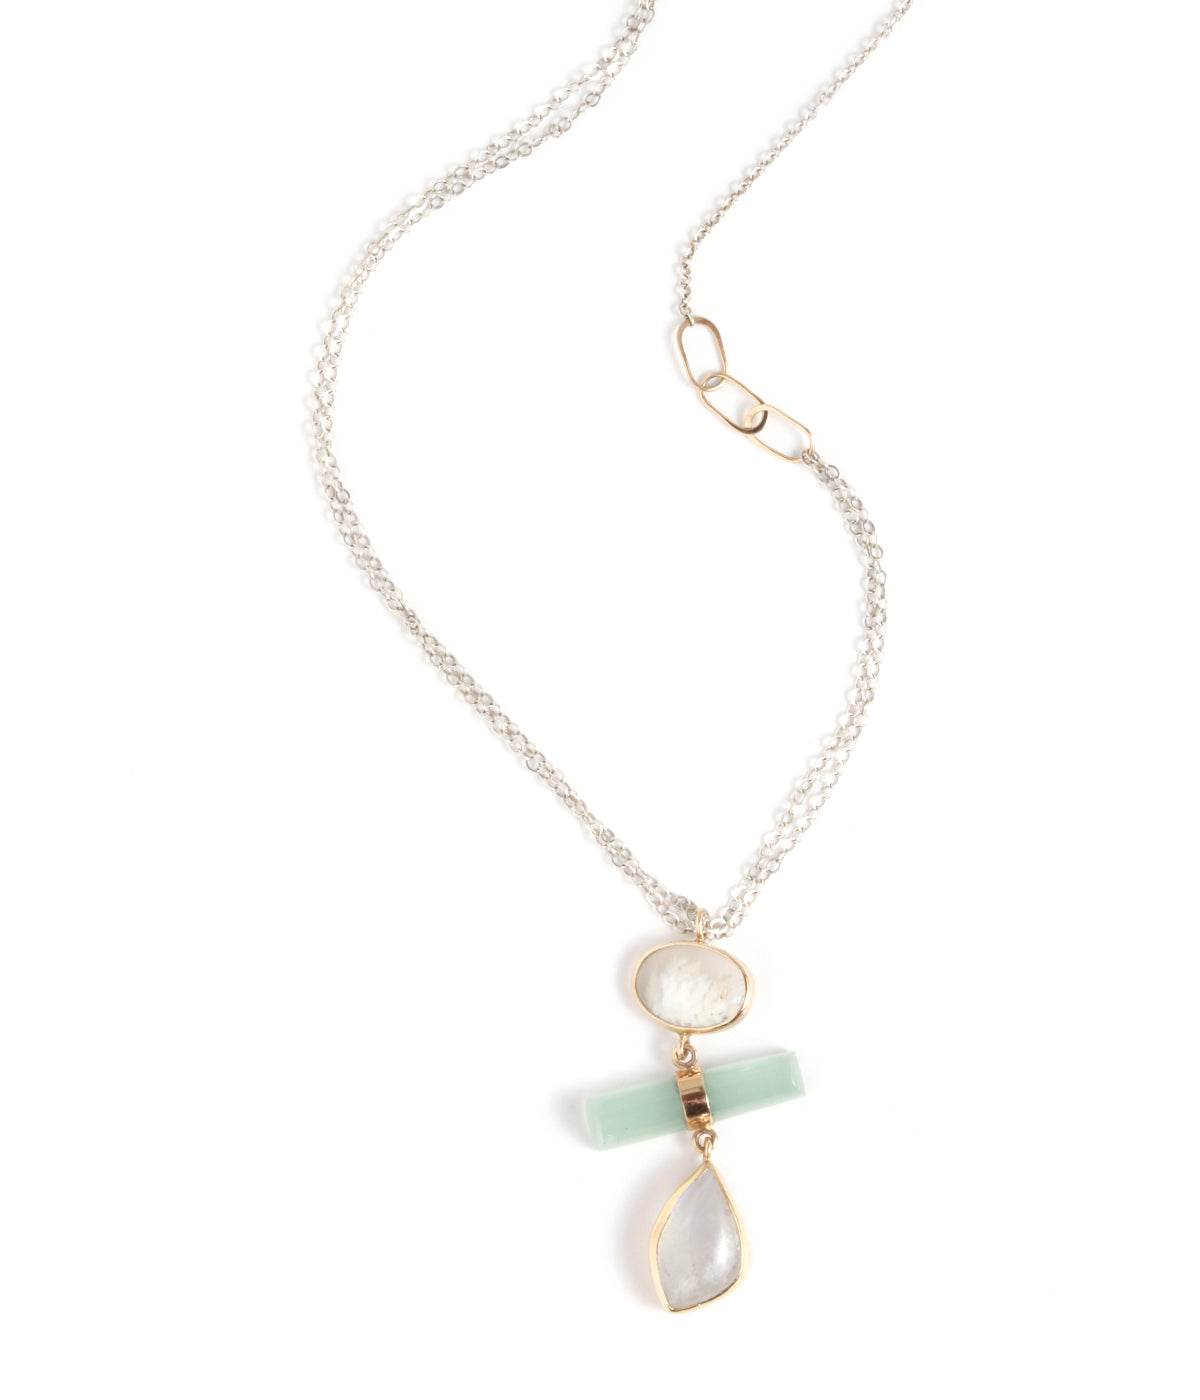 Plume Agate, Aquamarine, and Moonstone Drop Necklace - Melissa Joy Manning Jewelry